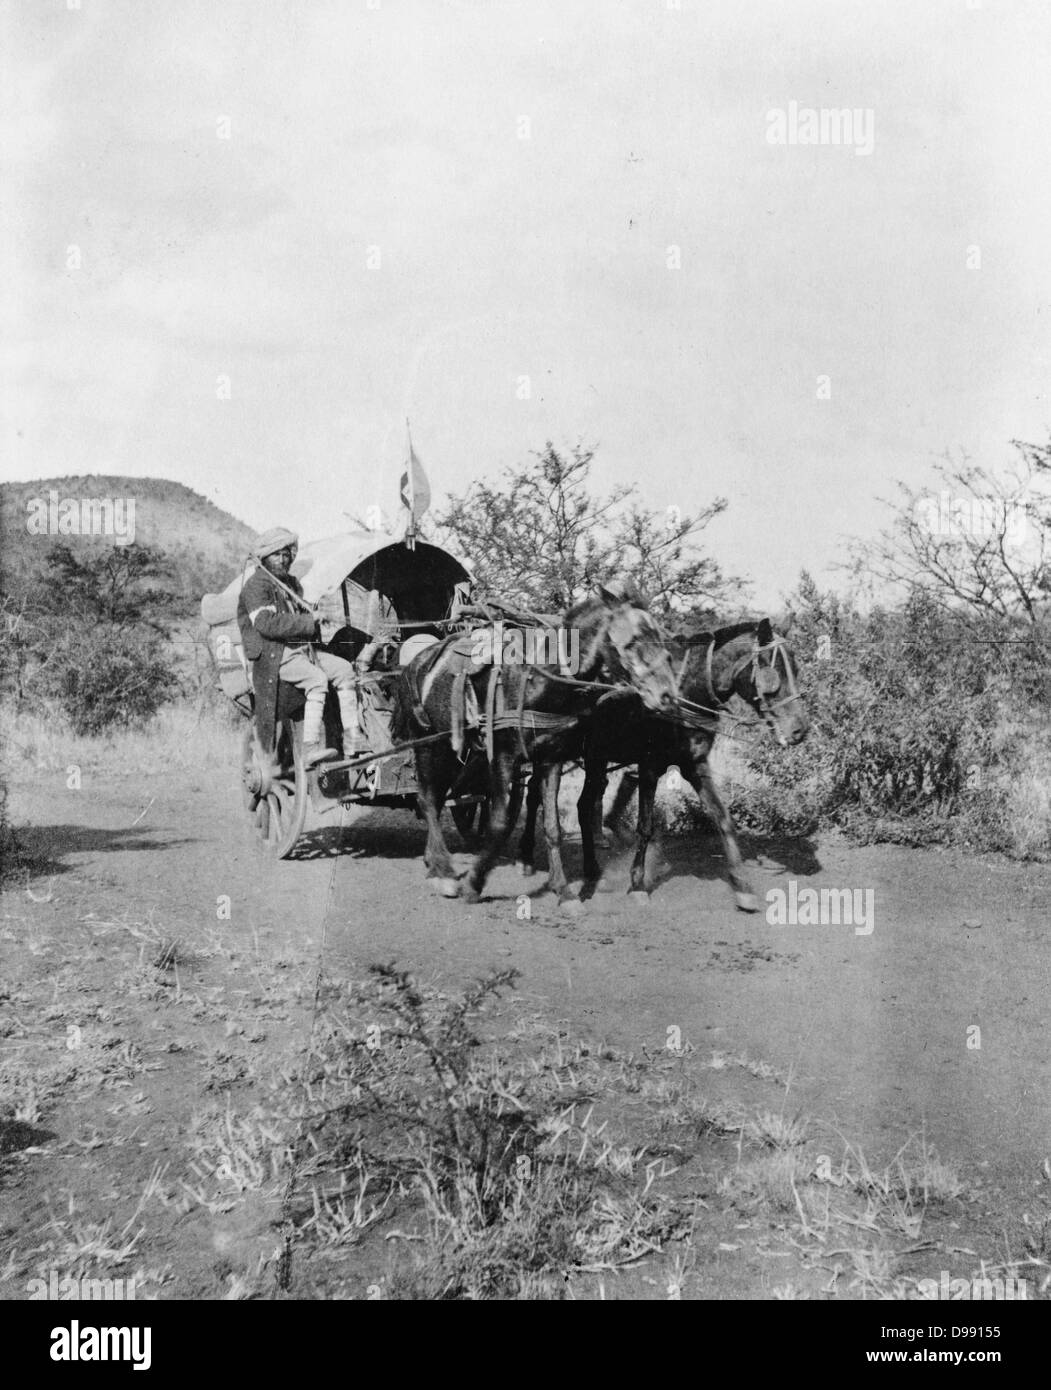 Second Boer War 1899-1902: Horse-drawn covered hospital cart with Indian driver used by British in South Africa - Stock Image